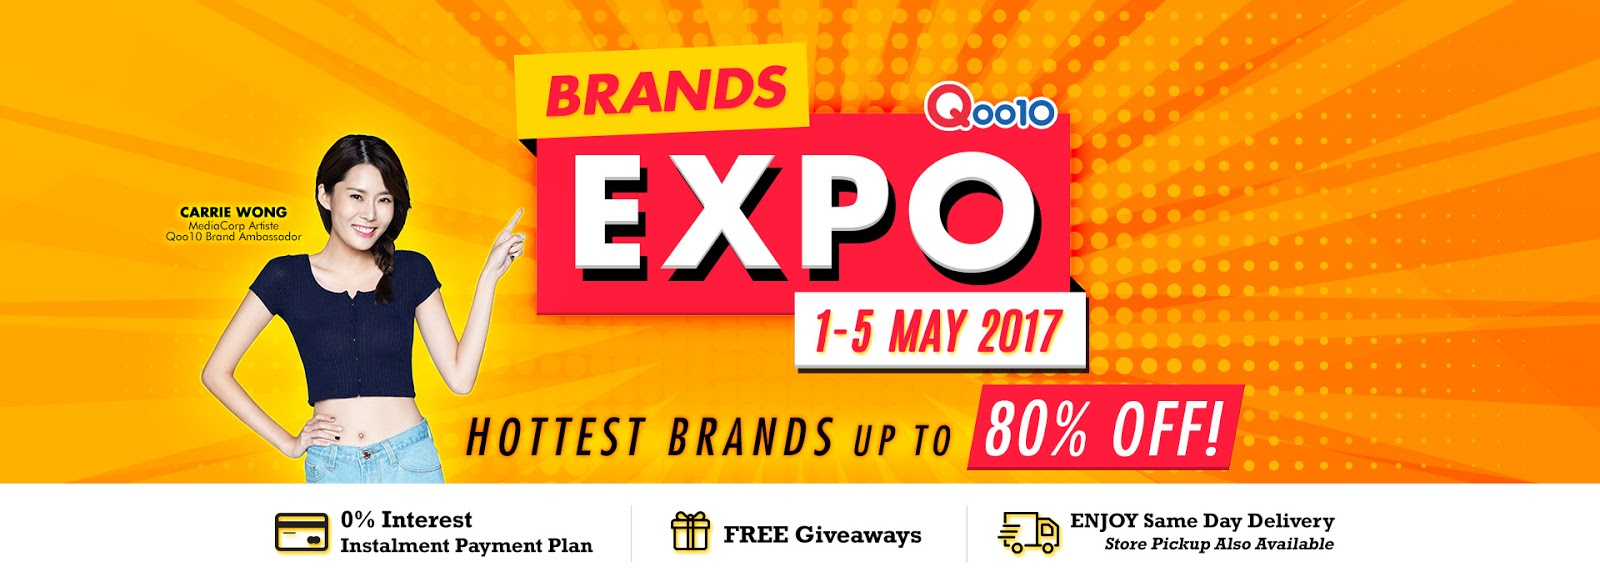 3964ea4252a ... off its biggest sale yesterday with the inaugural online Expo Sale,  scheduled to run from today to 5th May 2017. The online shopping festival sees  Qoo10 ...